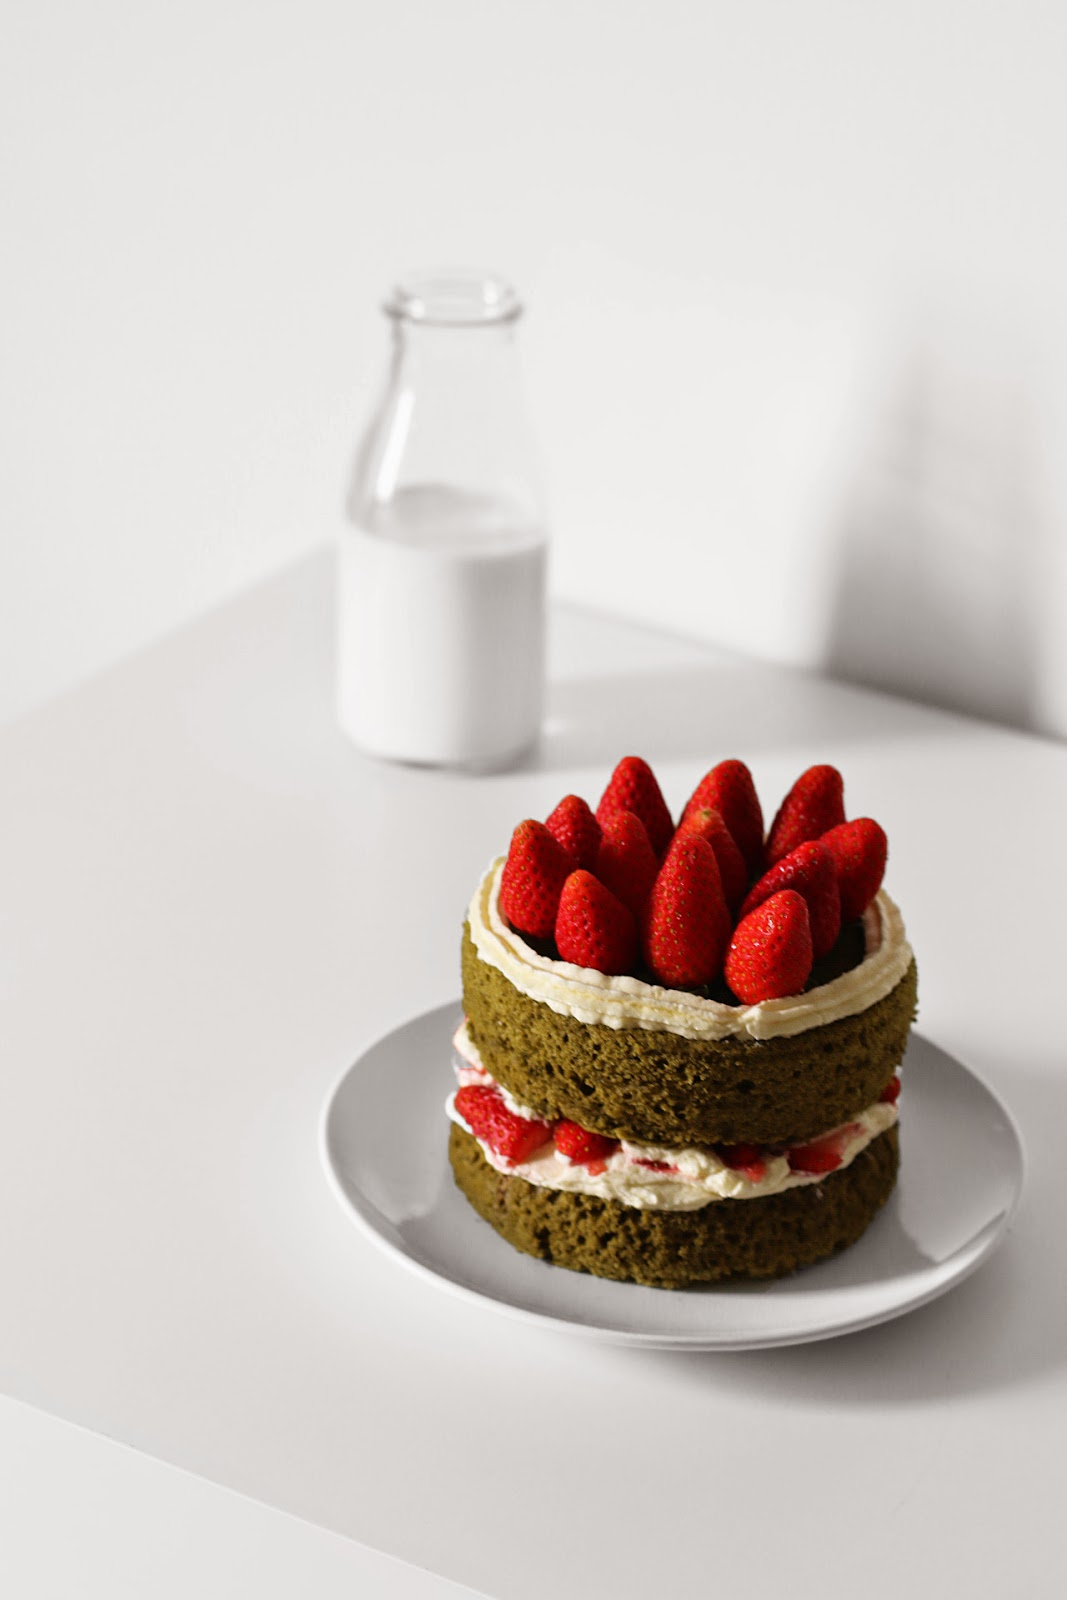 hydnchn matcha strawberry cake. Black Bedroom Furniture Sets. Home Design Ideas